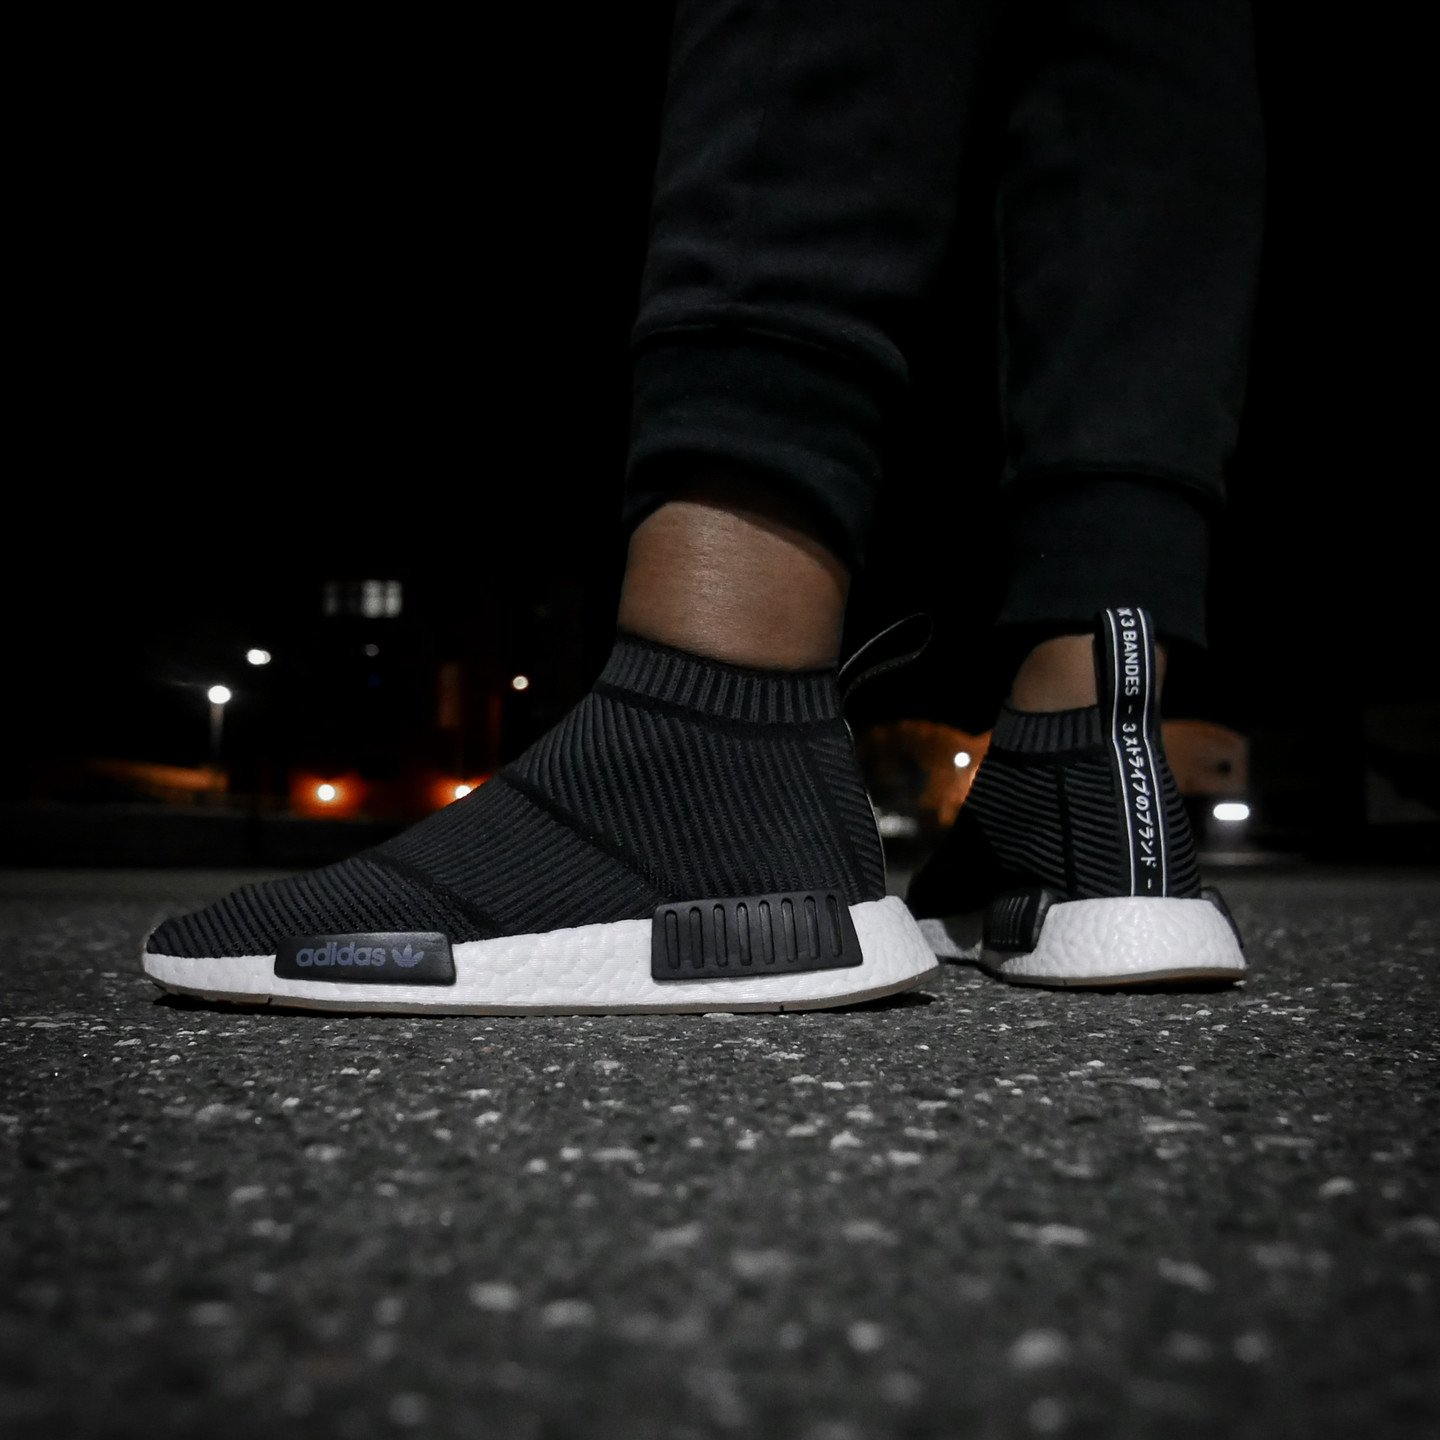 Adidas NMD CS1 City Sock Boost Primeknit Core Black / Gum BA7209-42